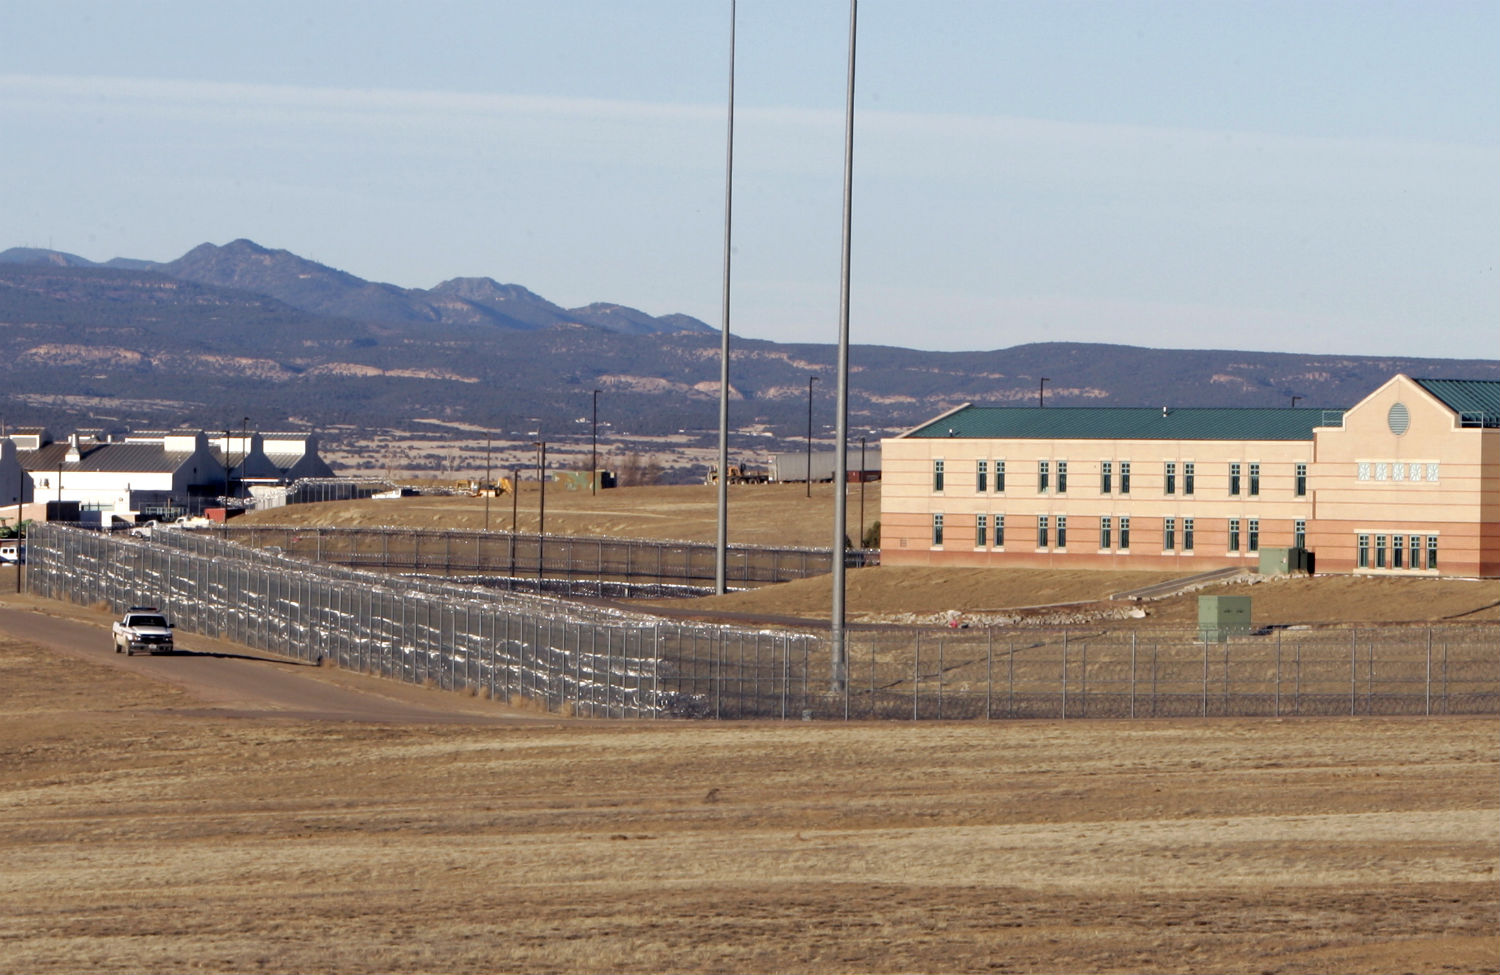 pemThe-ADX-prison-in-Florence-Colorado-where-inmates-are-held-in-solitary-confinement-for-twenty-two-to-twenty-four-hours-per-day.-ReutersRick-Wilkingemp